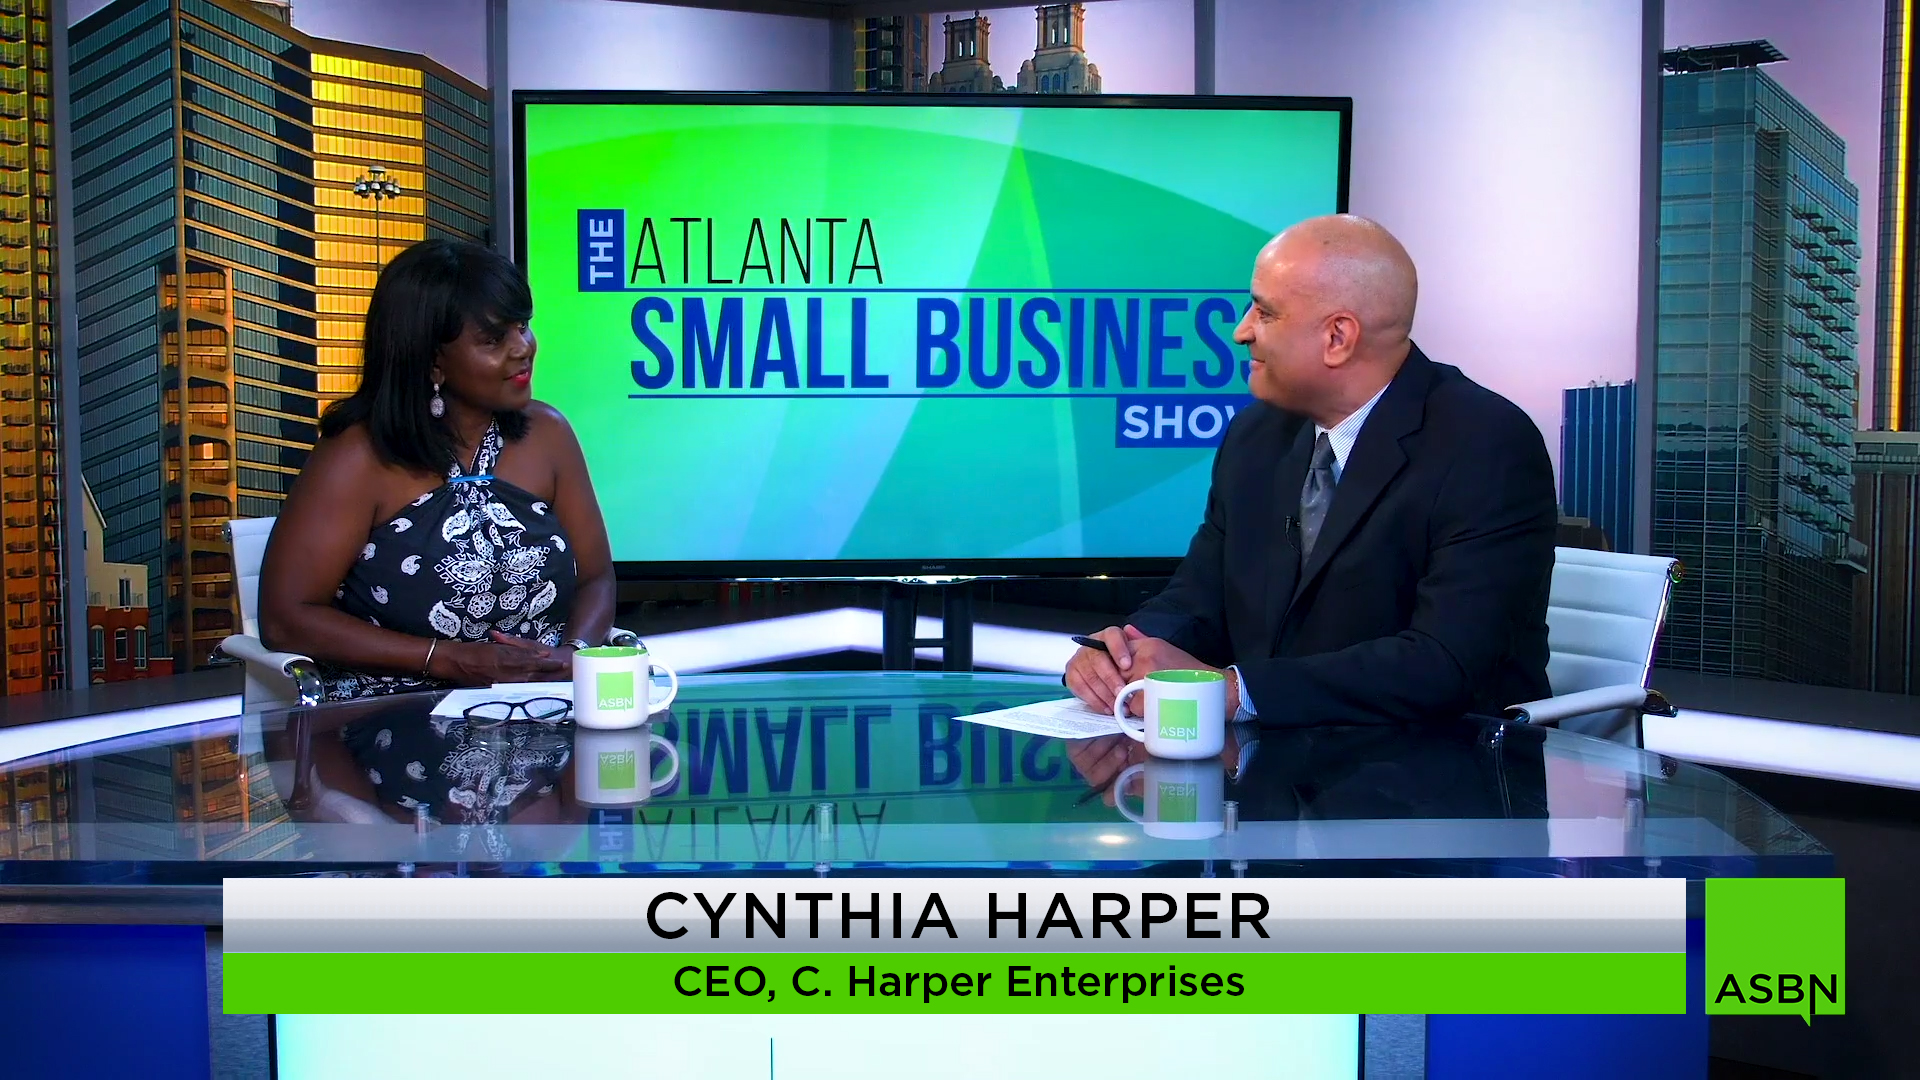 Has Your Business Considered Government Contracting and Procurement? - Mark Collier & Cynthia Harper